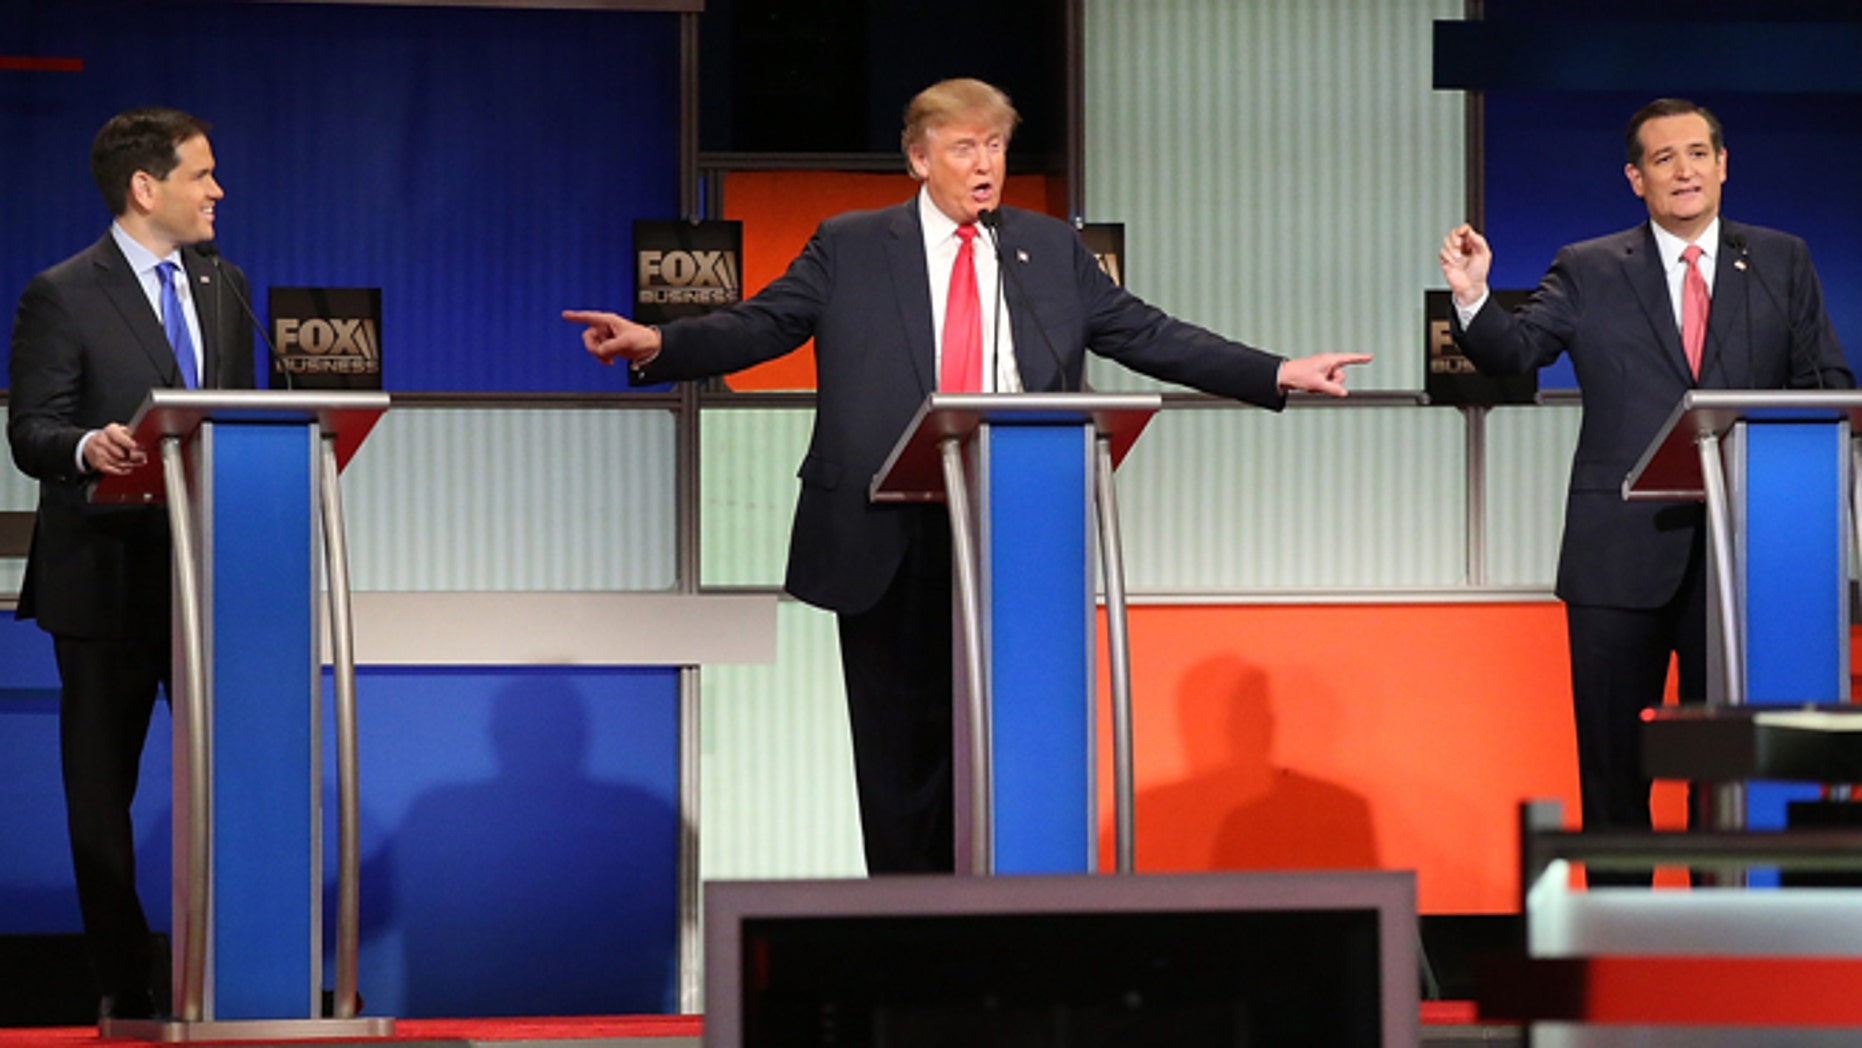 NORTH CHARLESTON, SC - JANUARY 14:  Republican presidential candidates (L-R) Sen. Marco Rubio (R-FL), Donald Trump and Sen. Ted Cruz (R-TX) participate in the Fox Business Network Republican presidential debate at the North Charleston Coliseum and Performing Arts Center on January 14, 2016 in North Charleston, South Carolina. The sixth Republican debate is held in two parts, one main debate for the top seven candidates, and another for three other candidates lower in the current polls.  (Photo by Scott Olson/Getty Images)